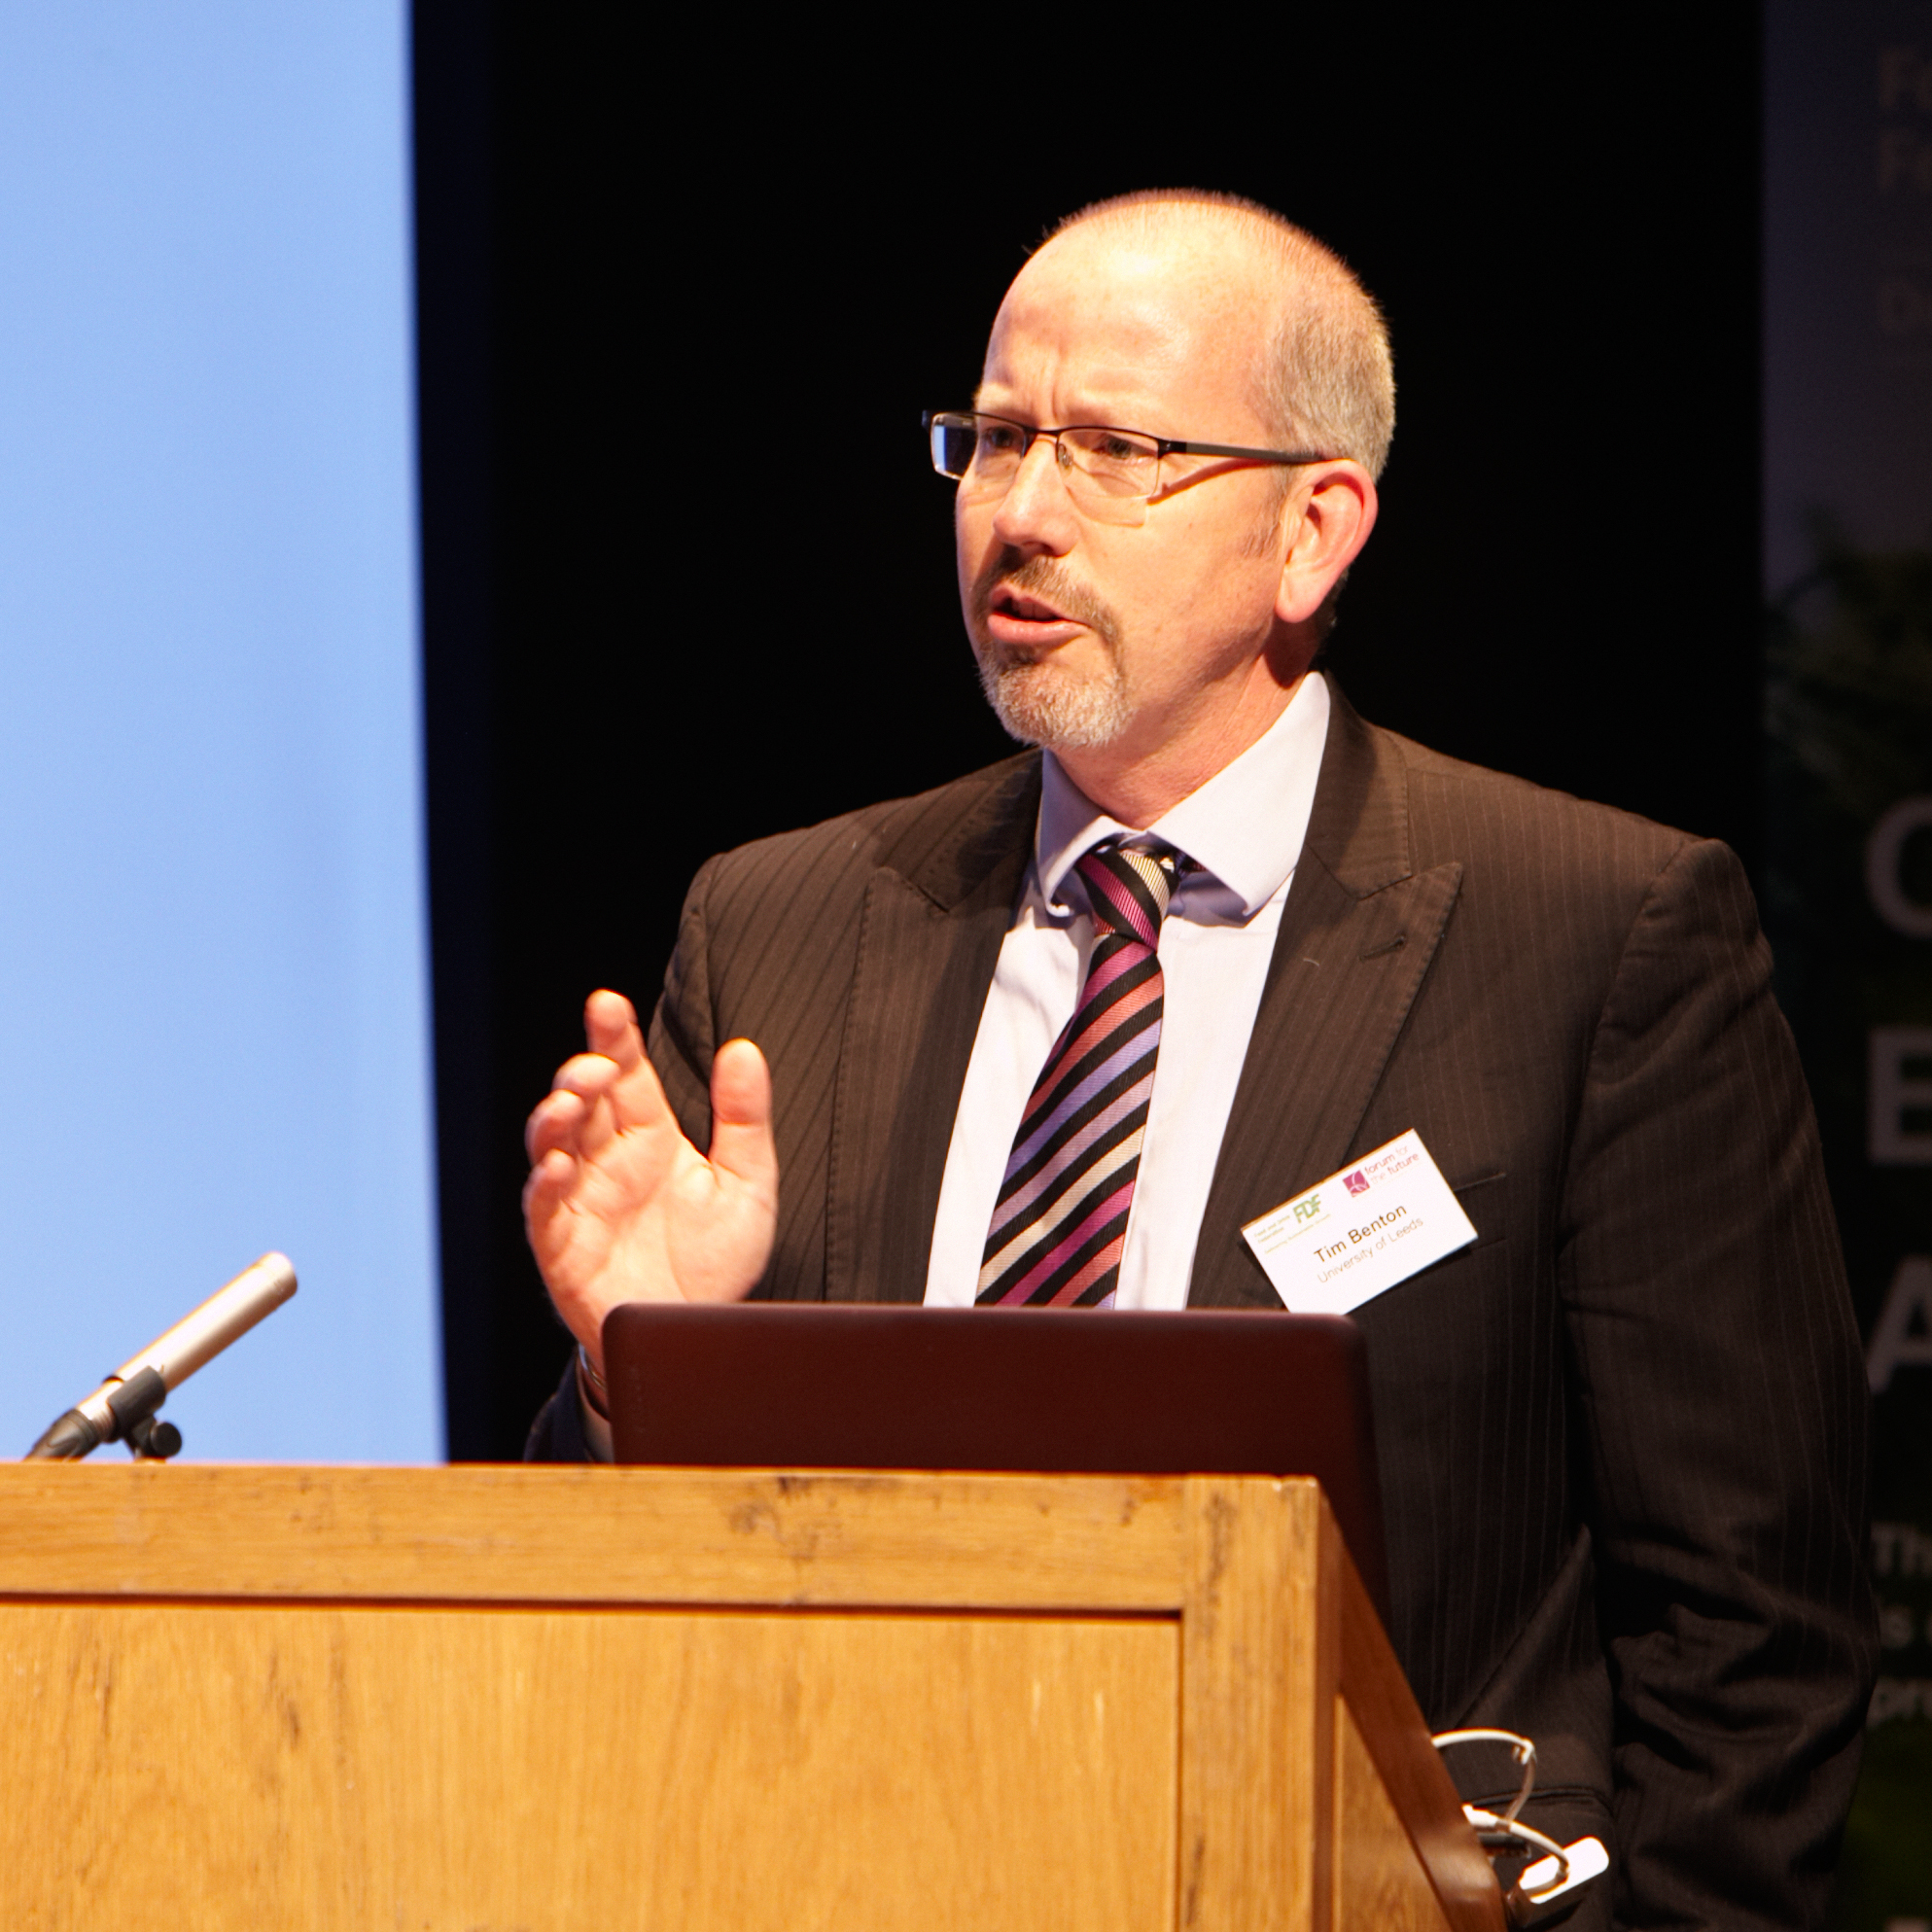 Professor Tim Benton speaking at an event